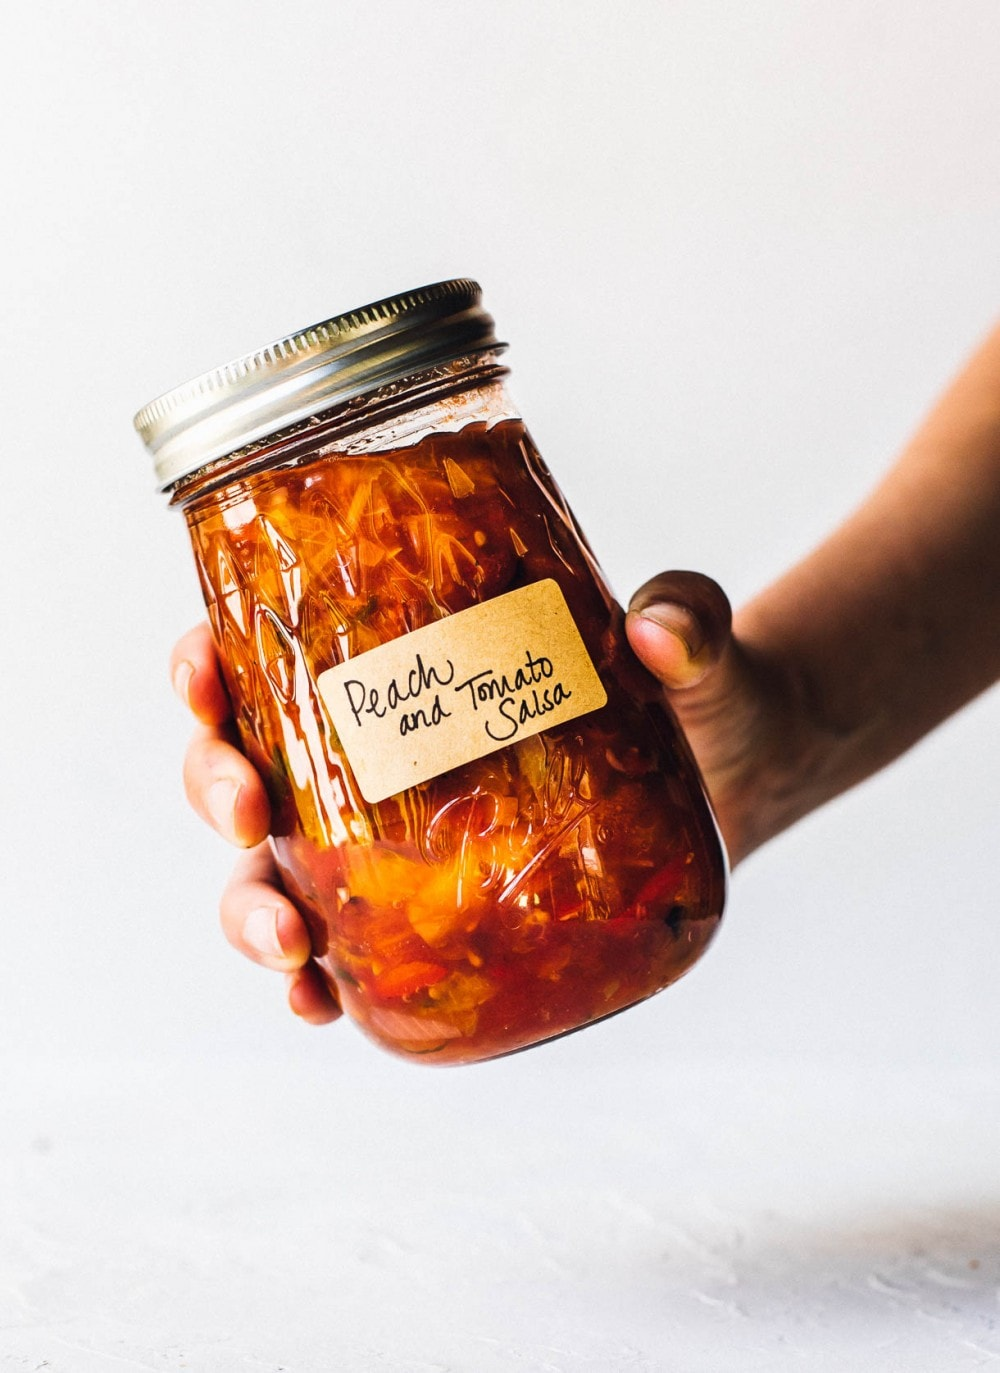 holding a jar of tomato peach salsa